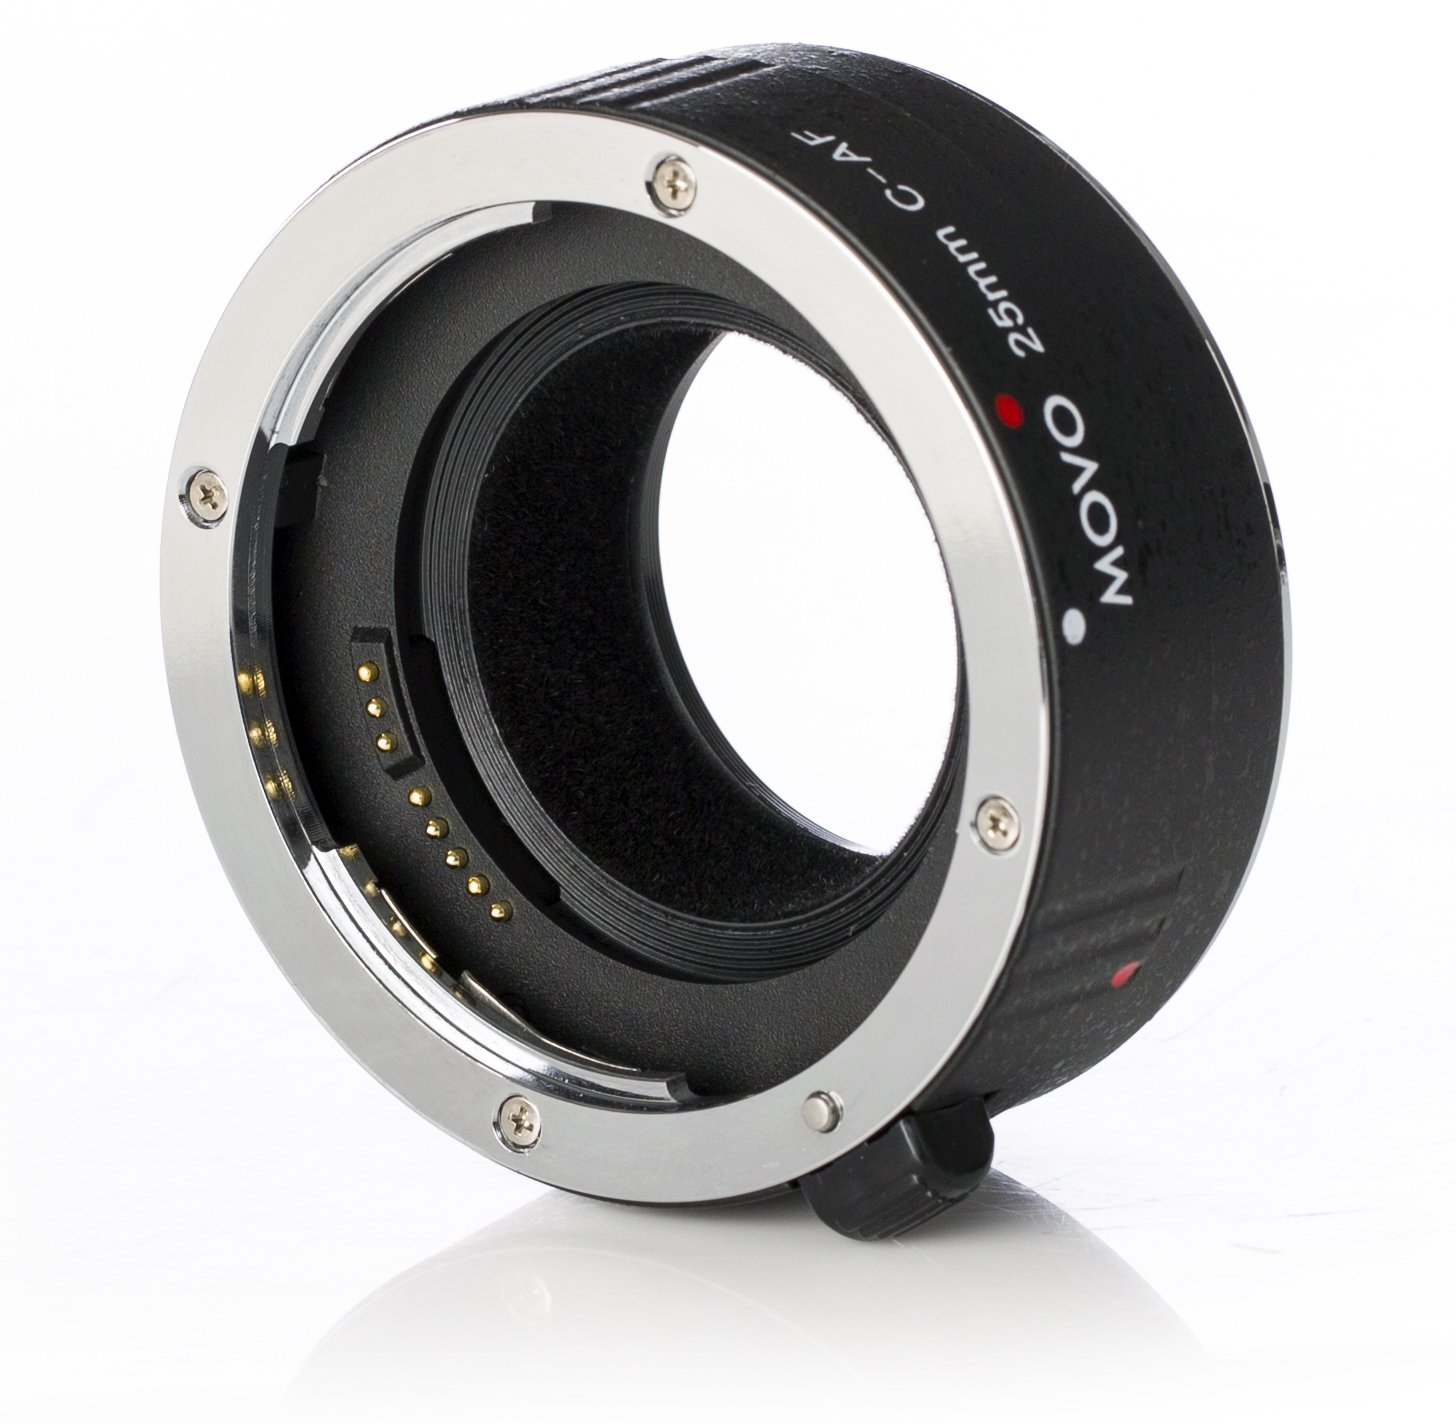 Movo MT-C25 25mm AF Chrome Macro Extension Tube for Canon EOS DSLR Camera & EF/EF-S Lenses by Movo